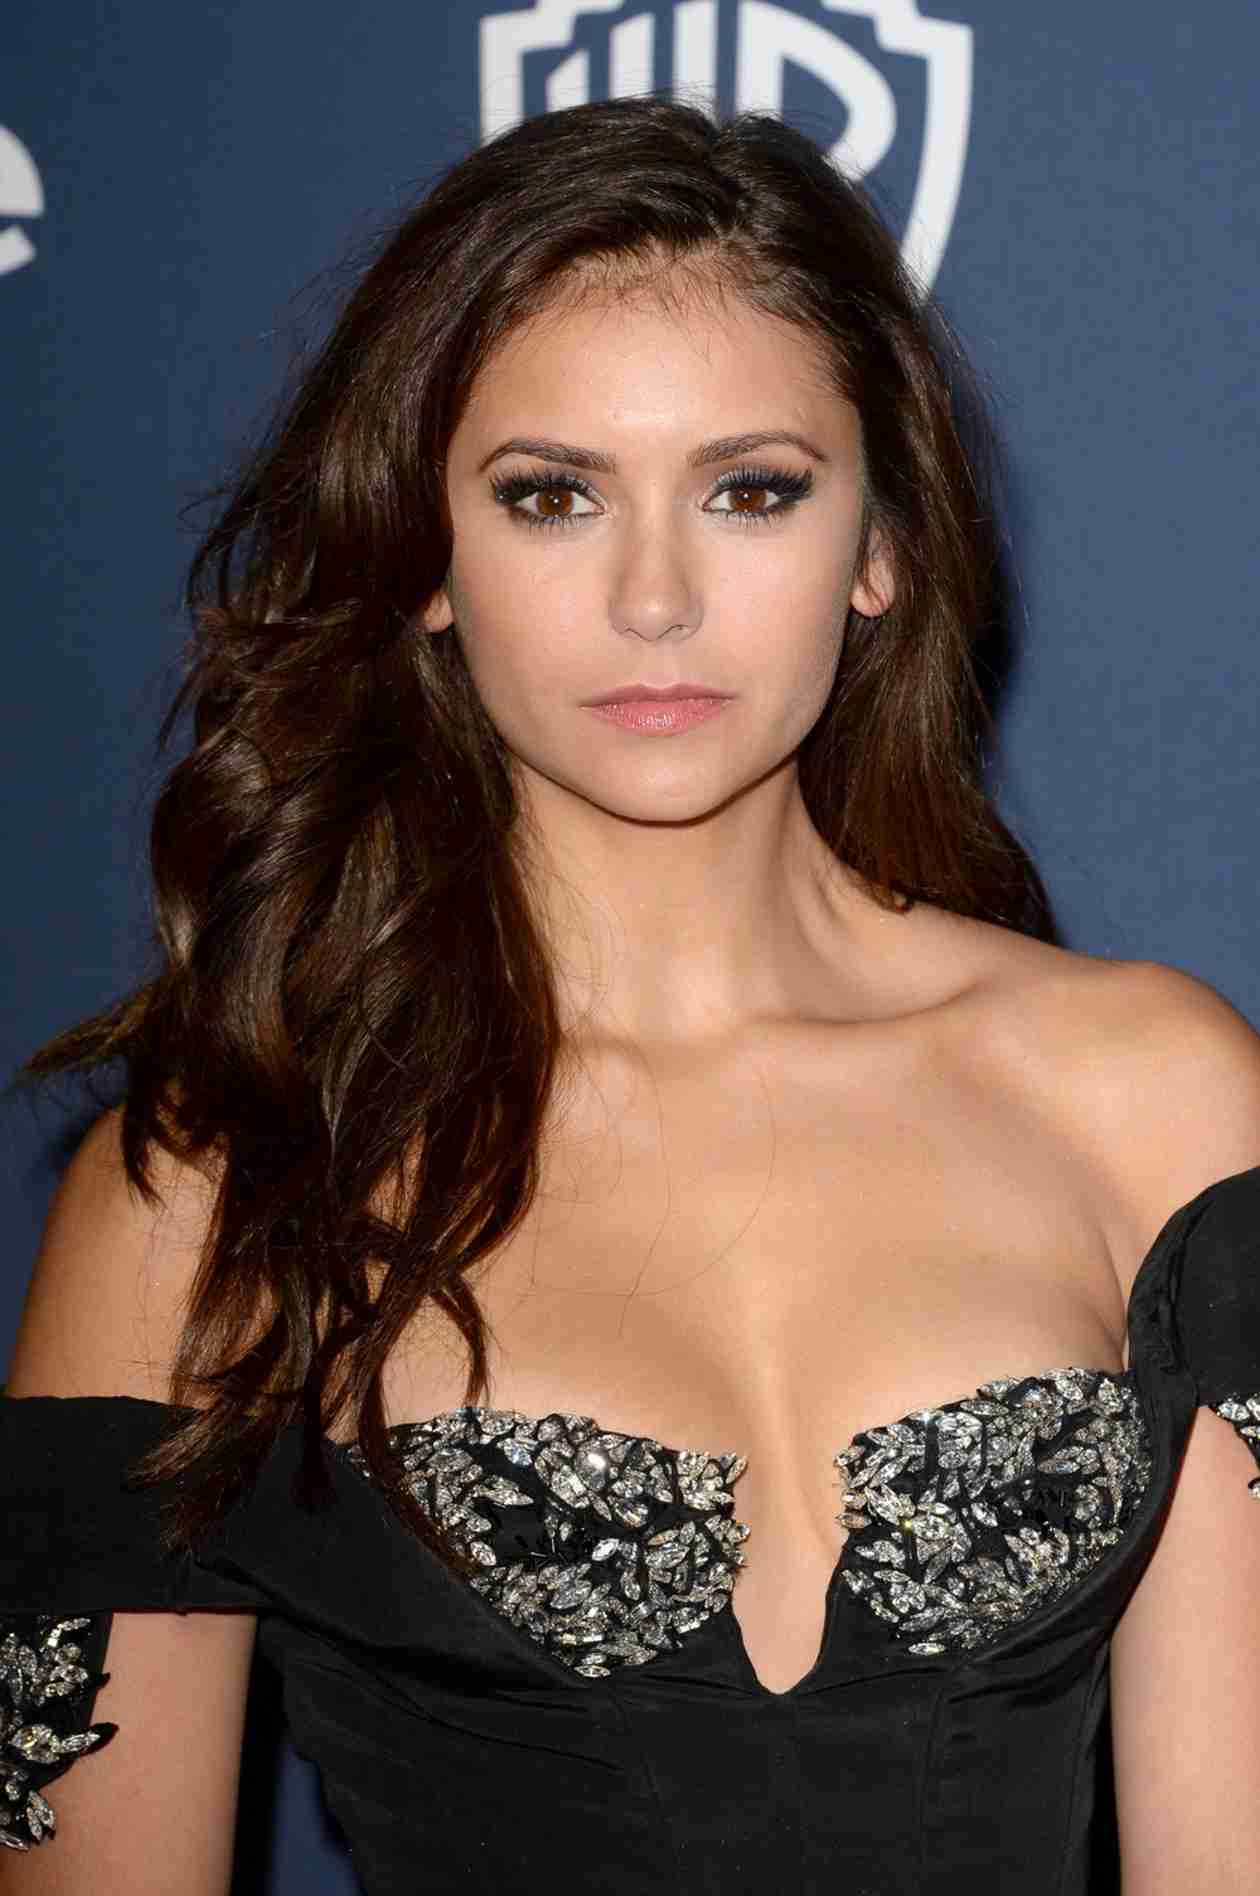 Nina Dobrev and Zachary Levi Are a Super Cute Beach Bowl Pair (PHOTO)